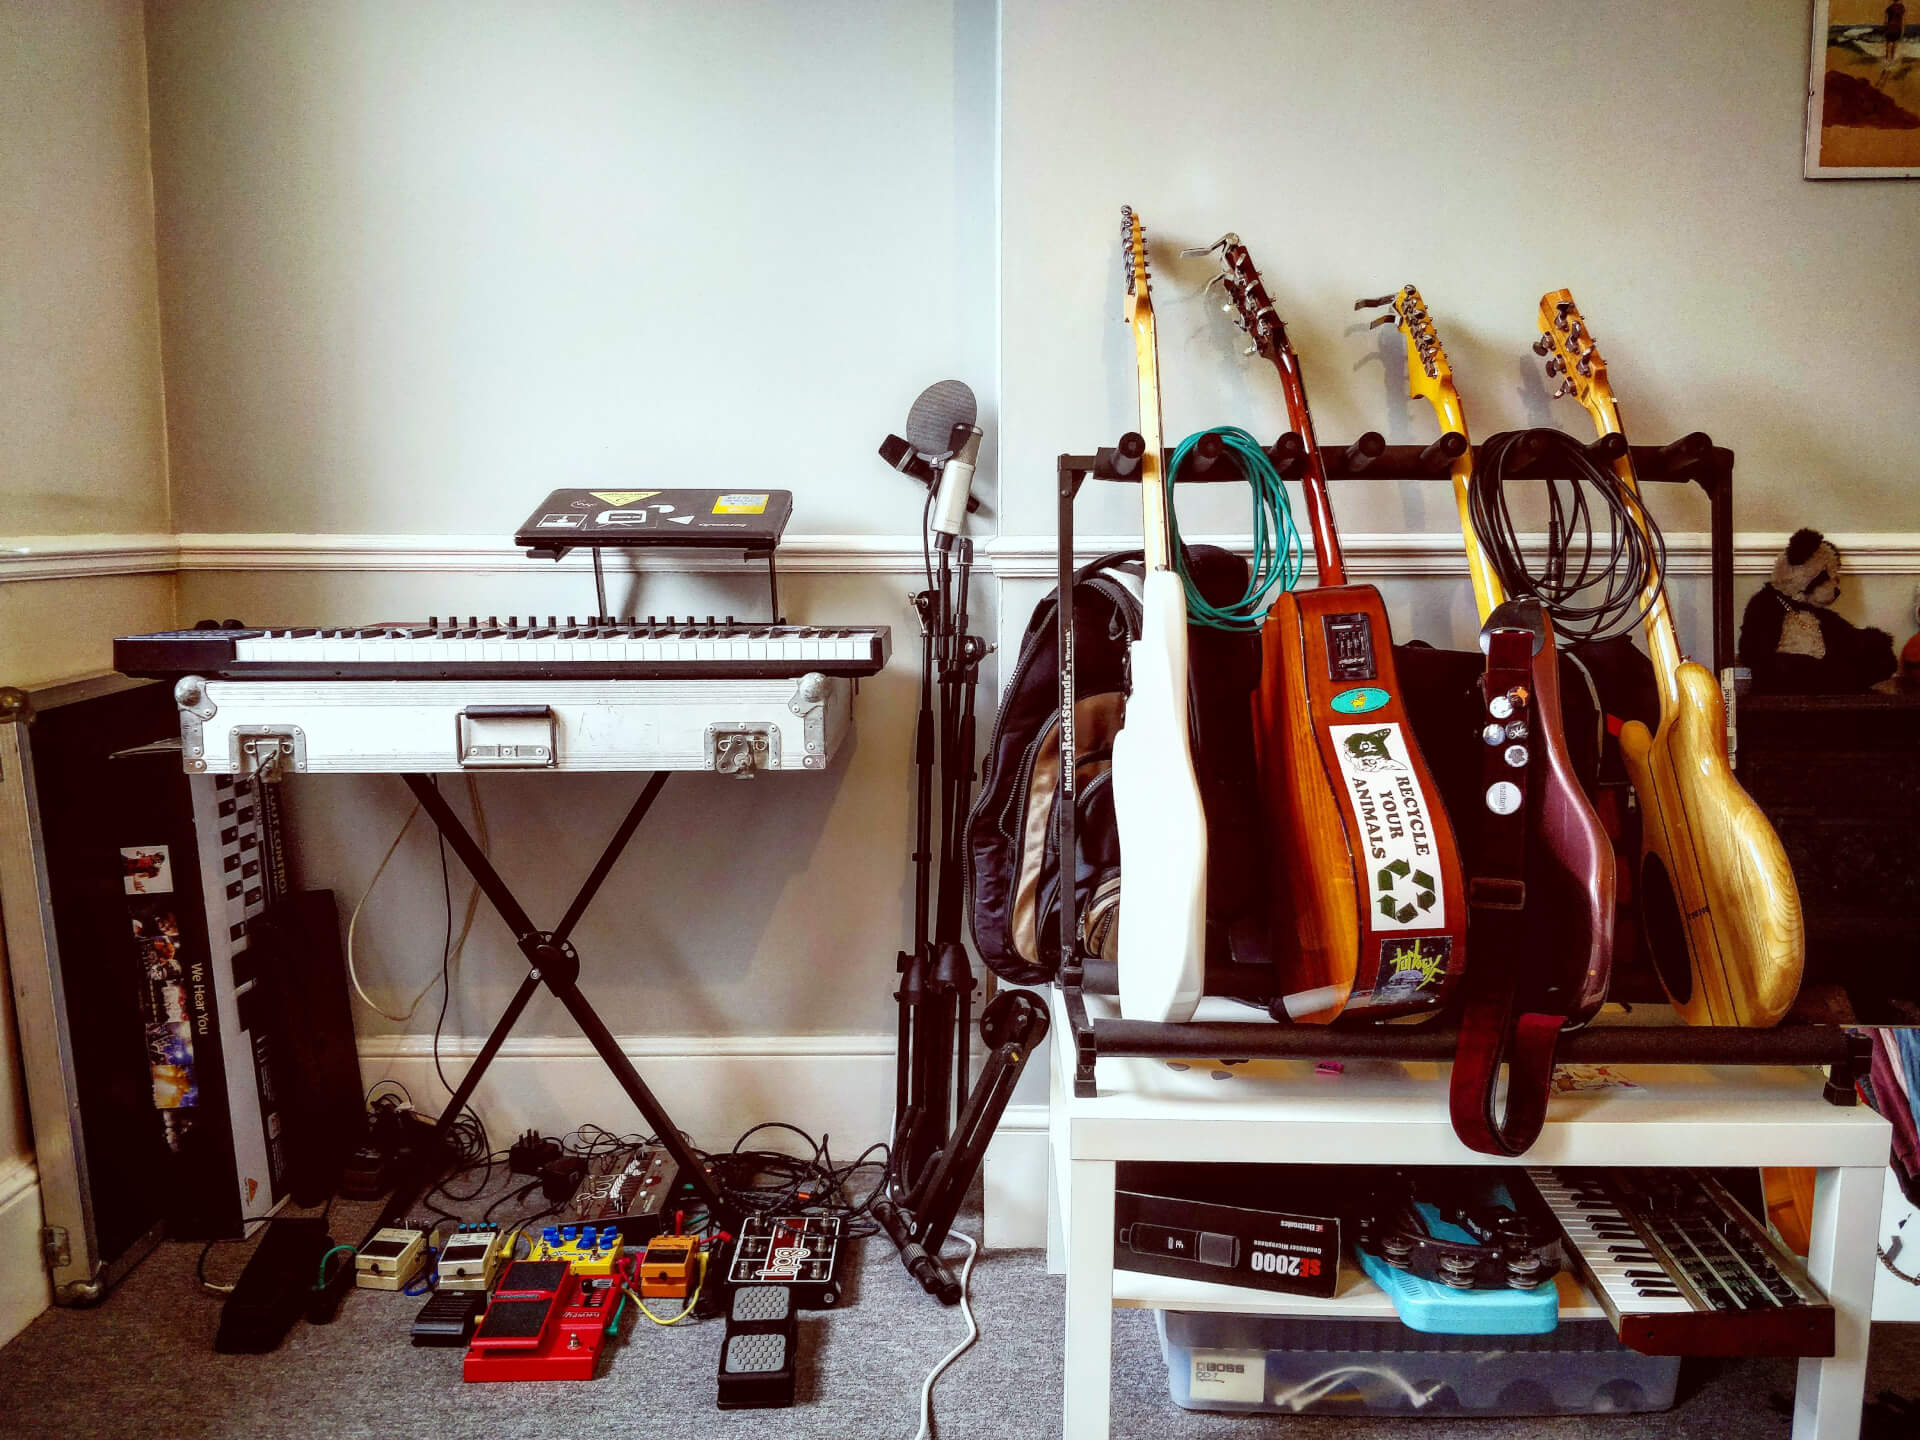 An image of music gear set up for recording